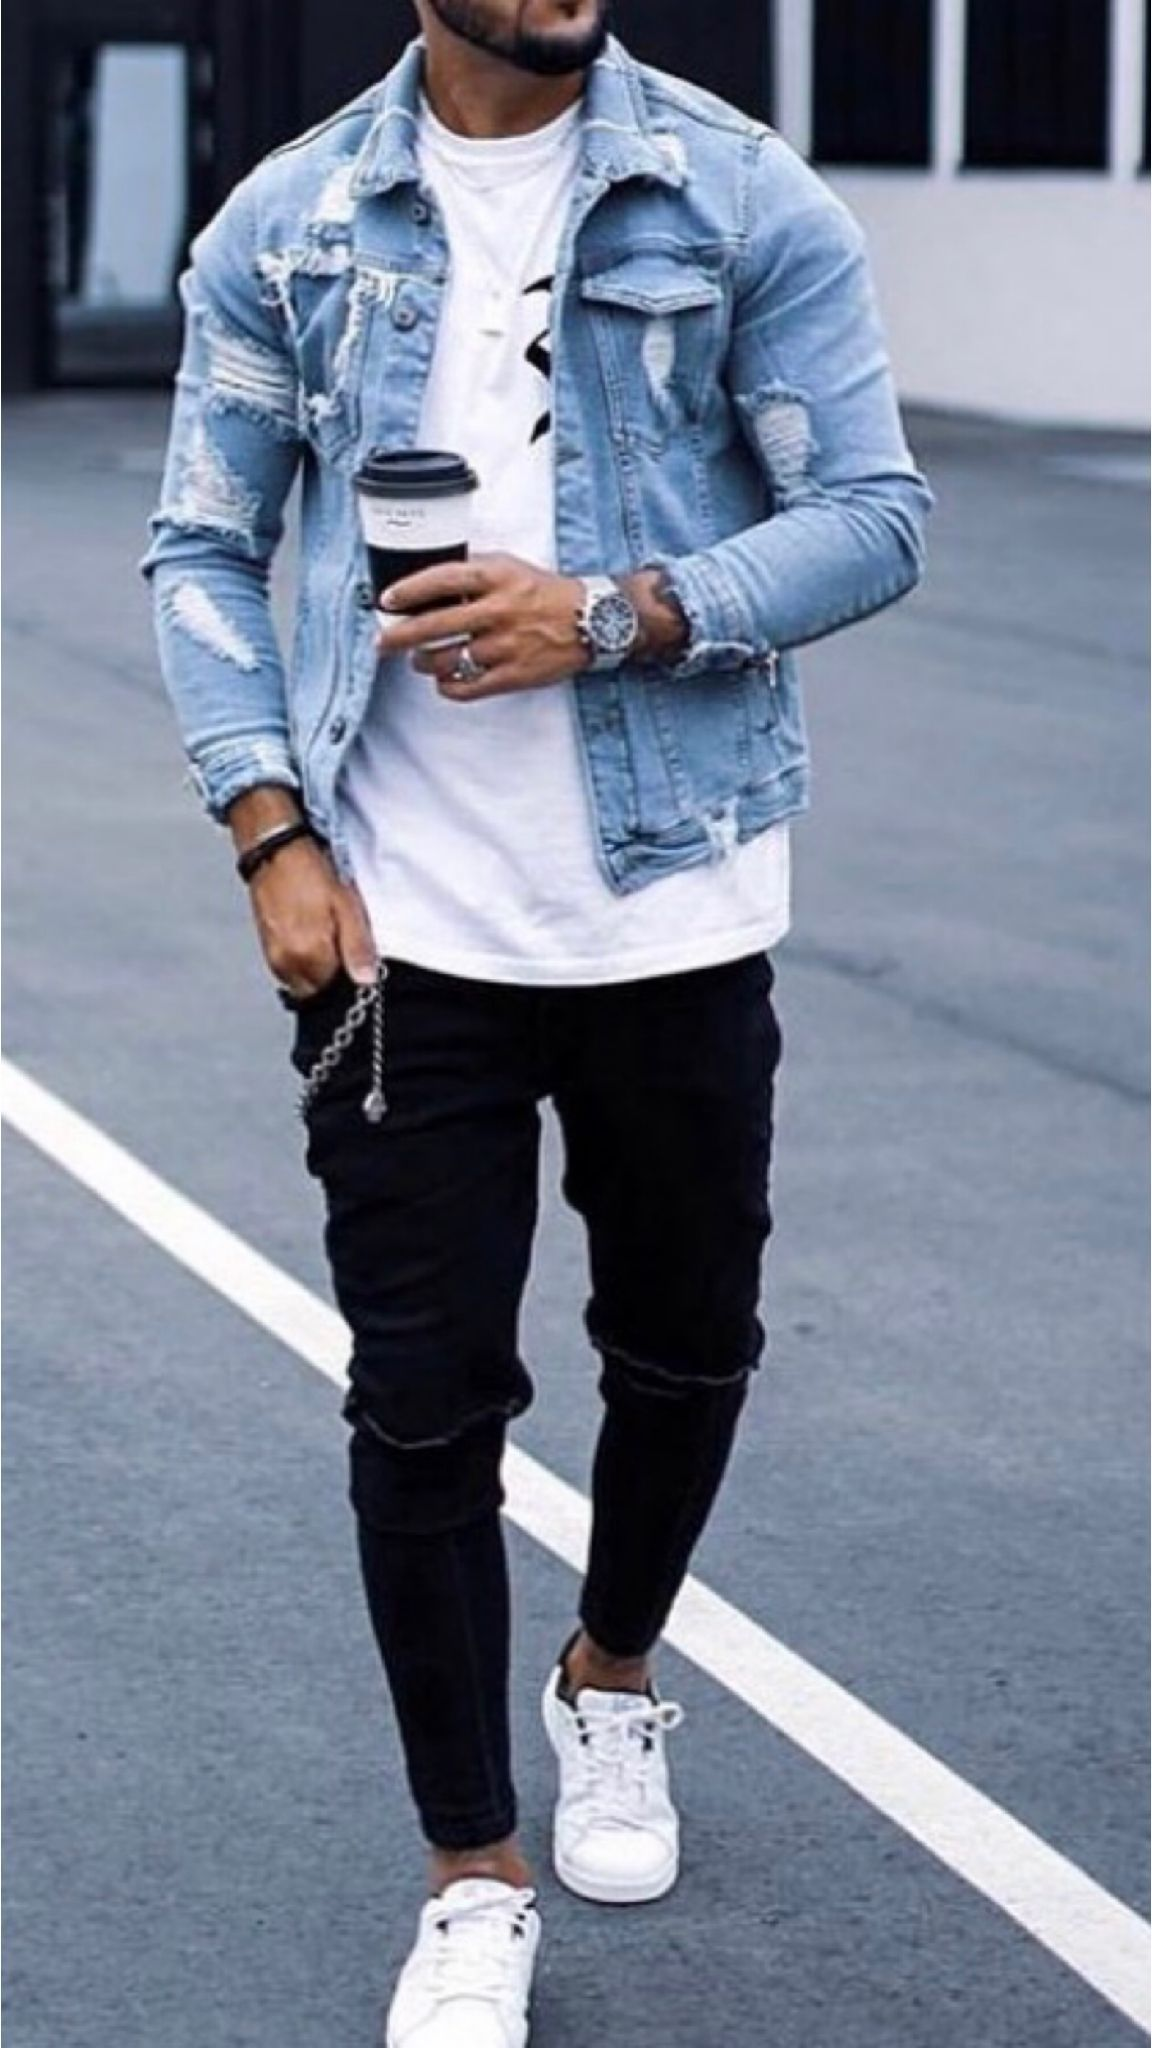 49 Trendy Casual Shoes for Men Style 2019 Gallery